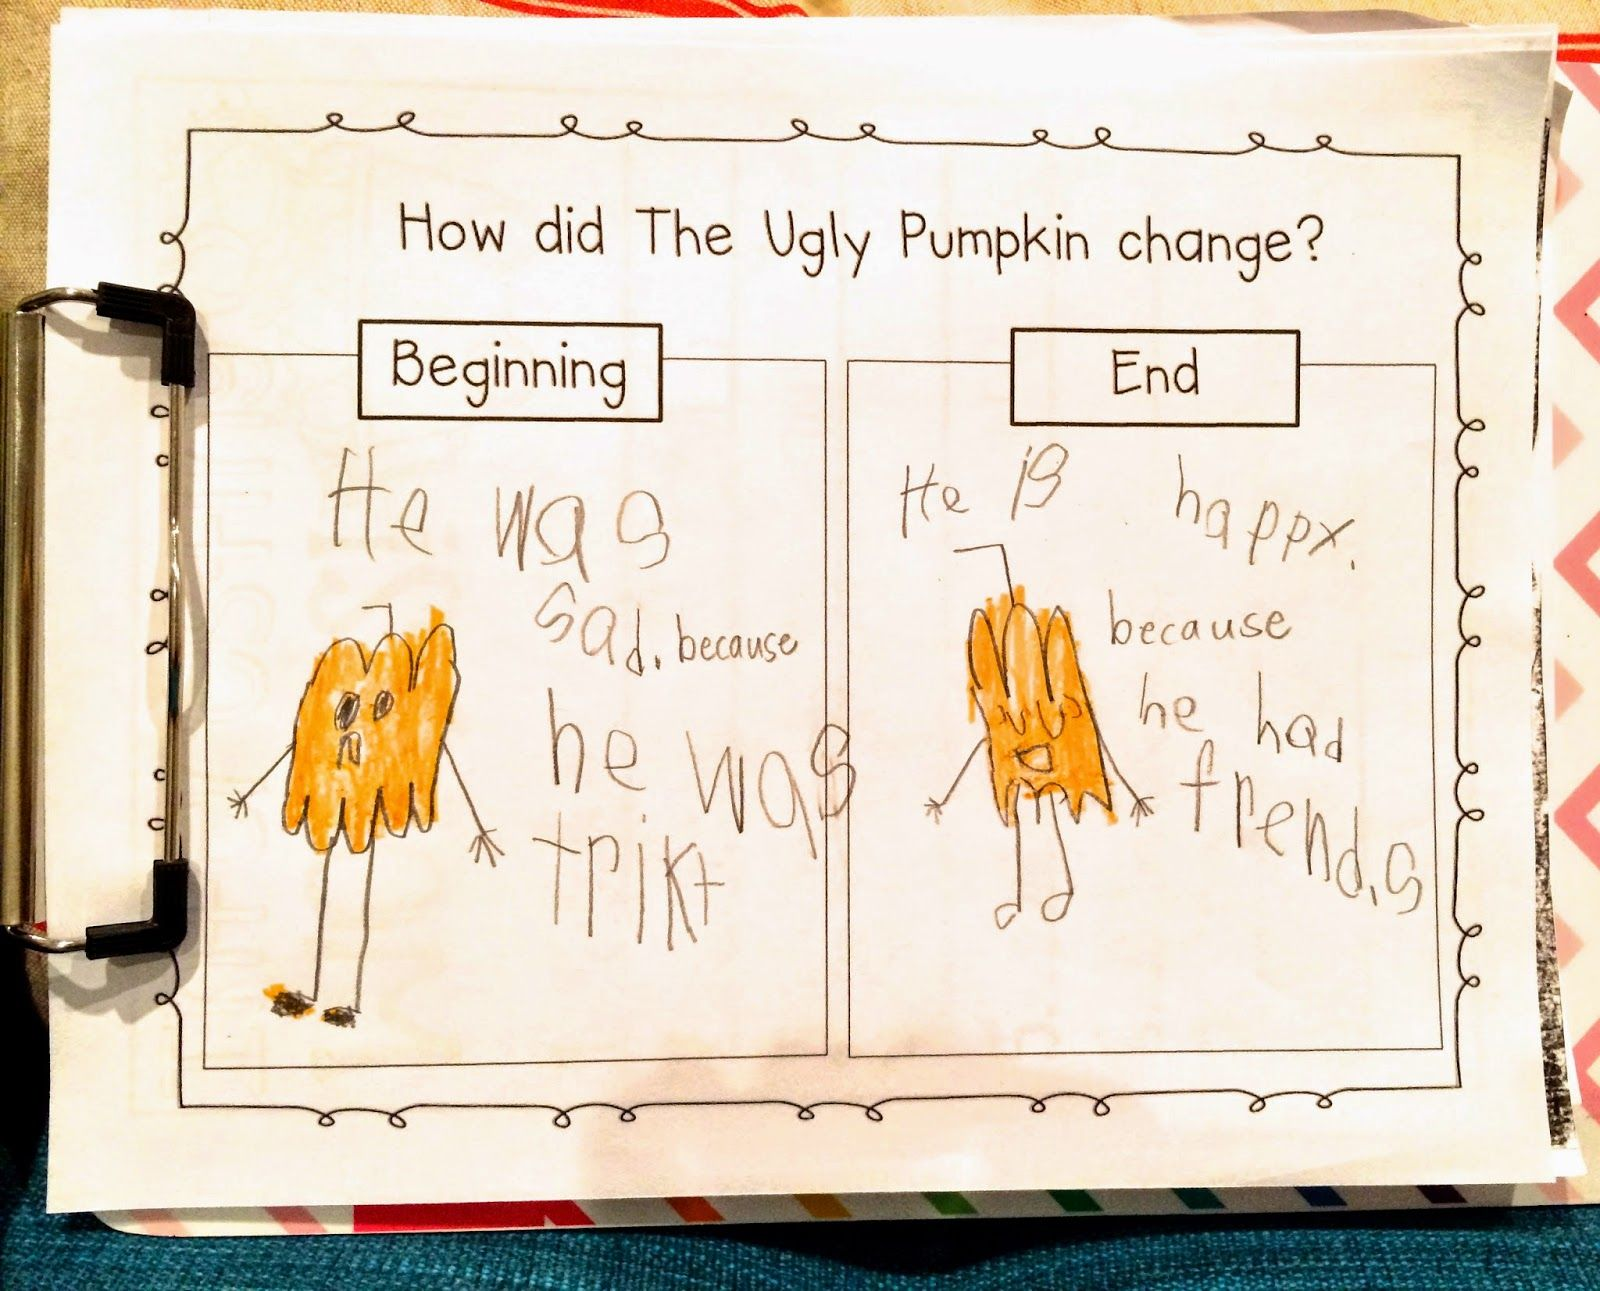 The Ugly Pumpkin An Activity For Primary Grades